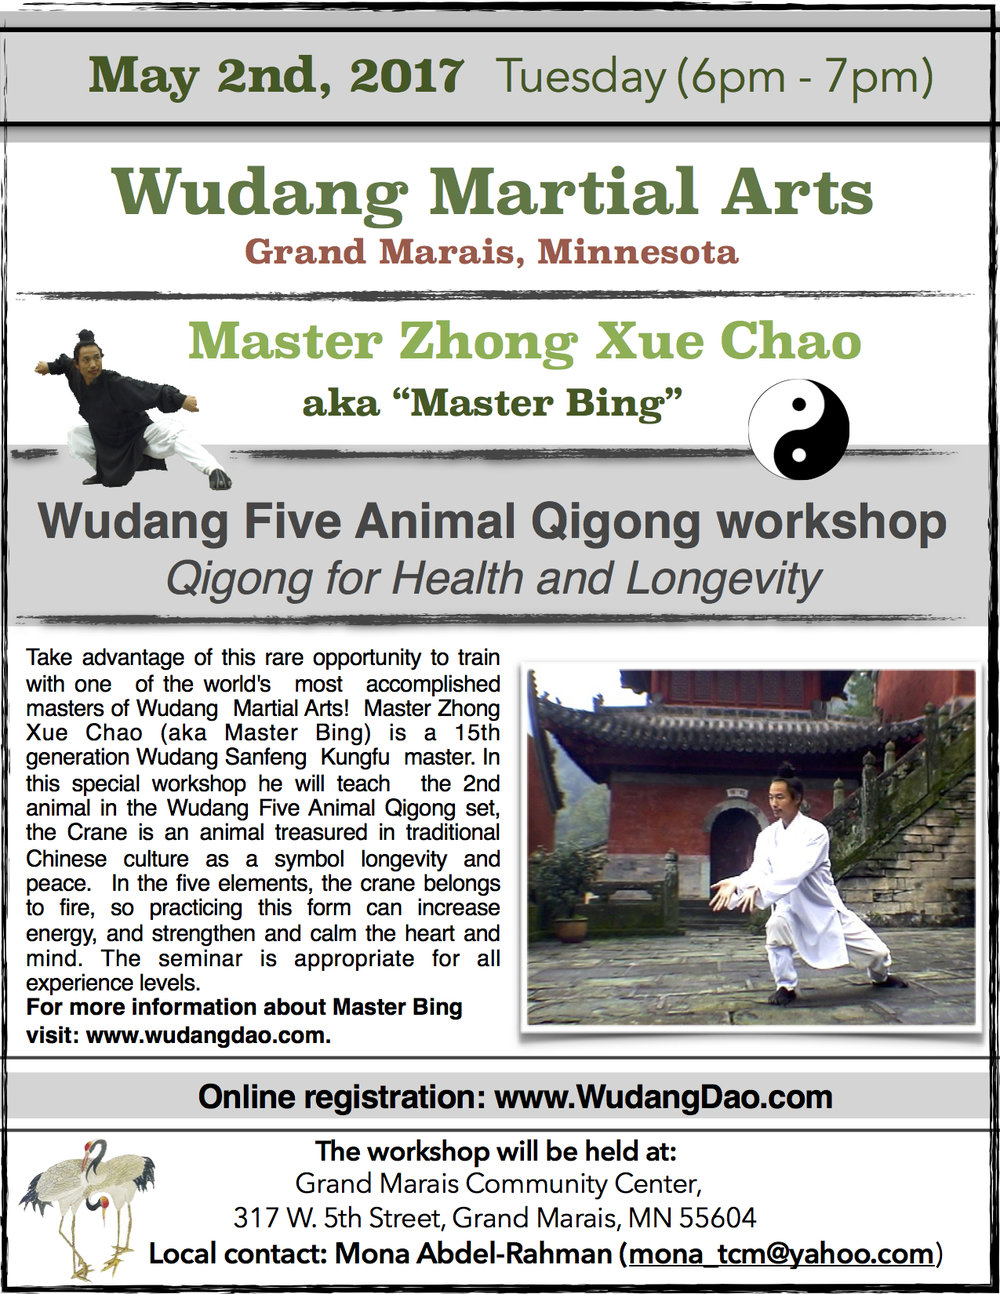 Wudang Martial Arts